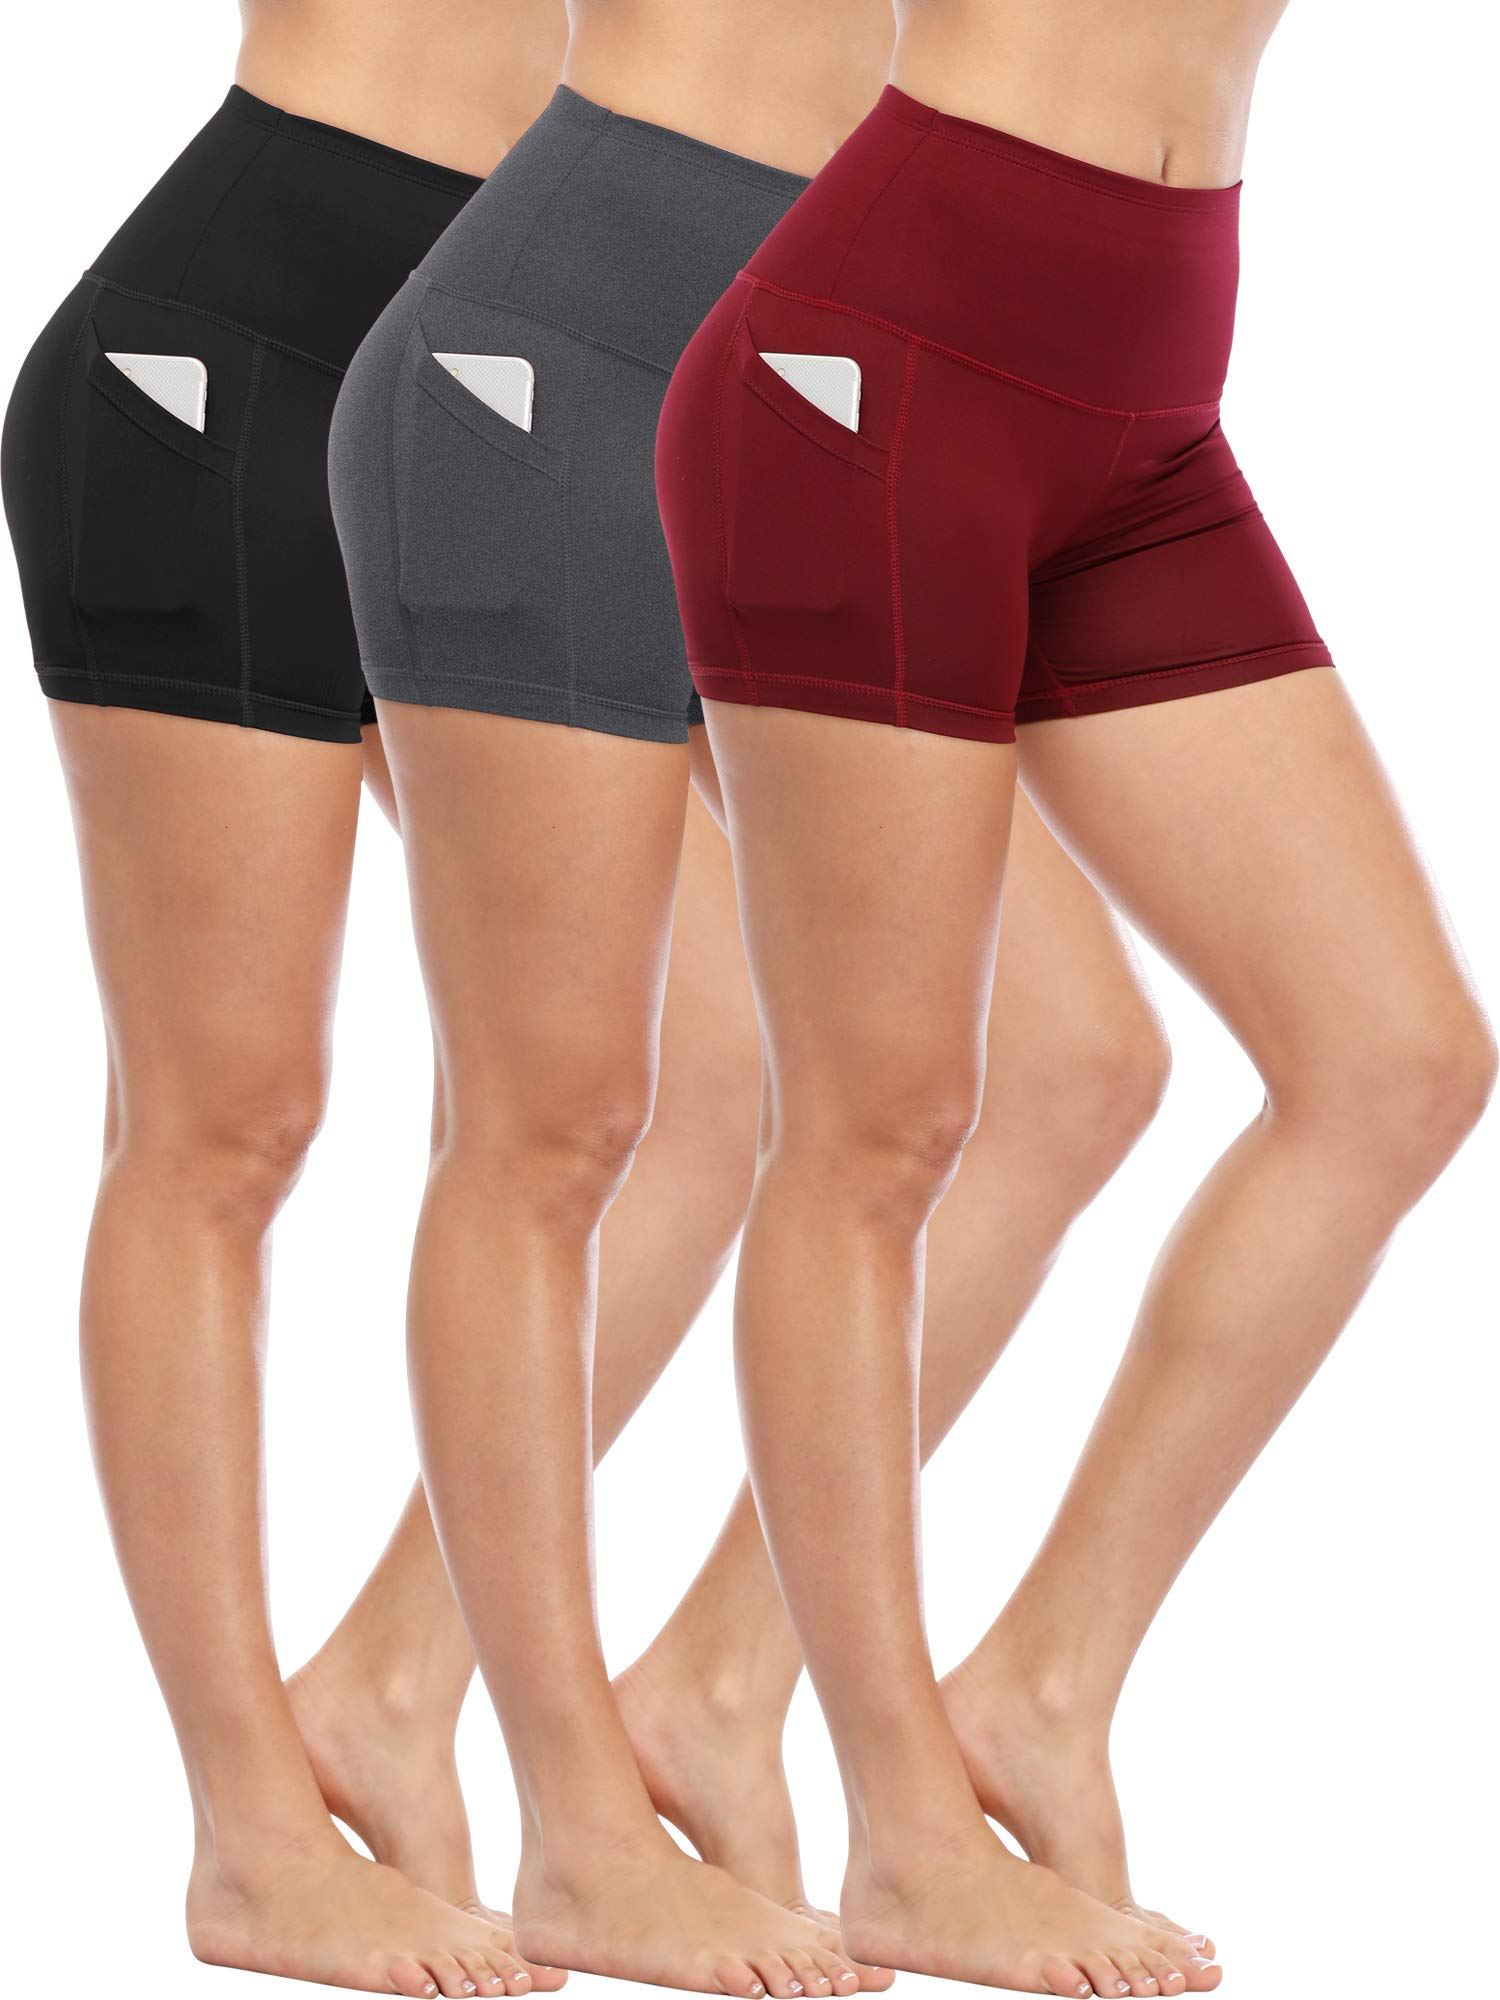 Cadmus Women's Tummy Control Workout Running Short Out Pocket,3 Pack,1016,Black & Grey & Wine Red,Small by Cadmus